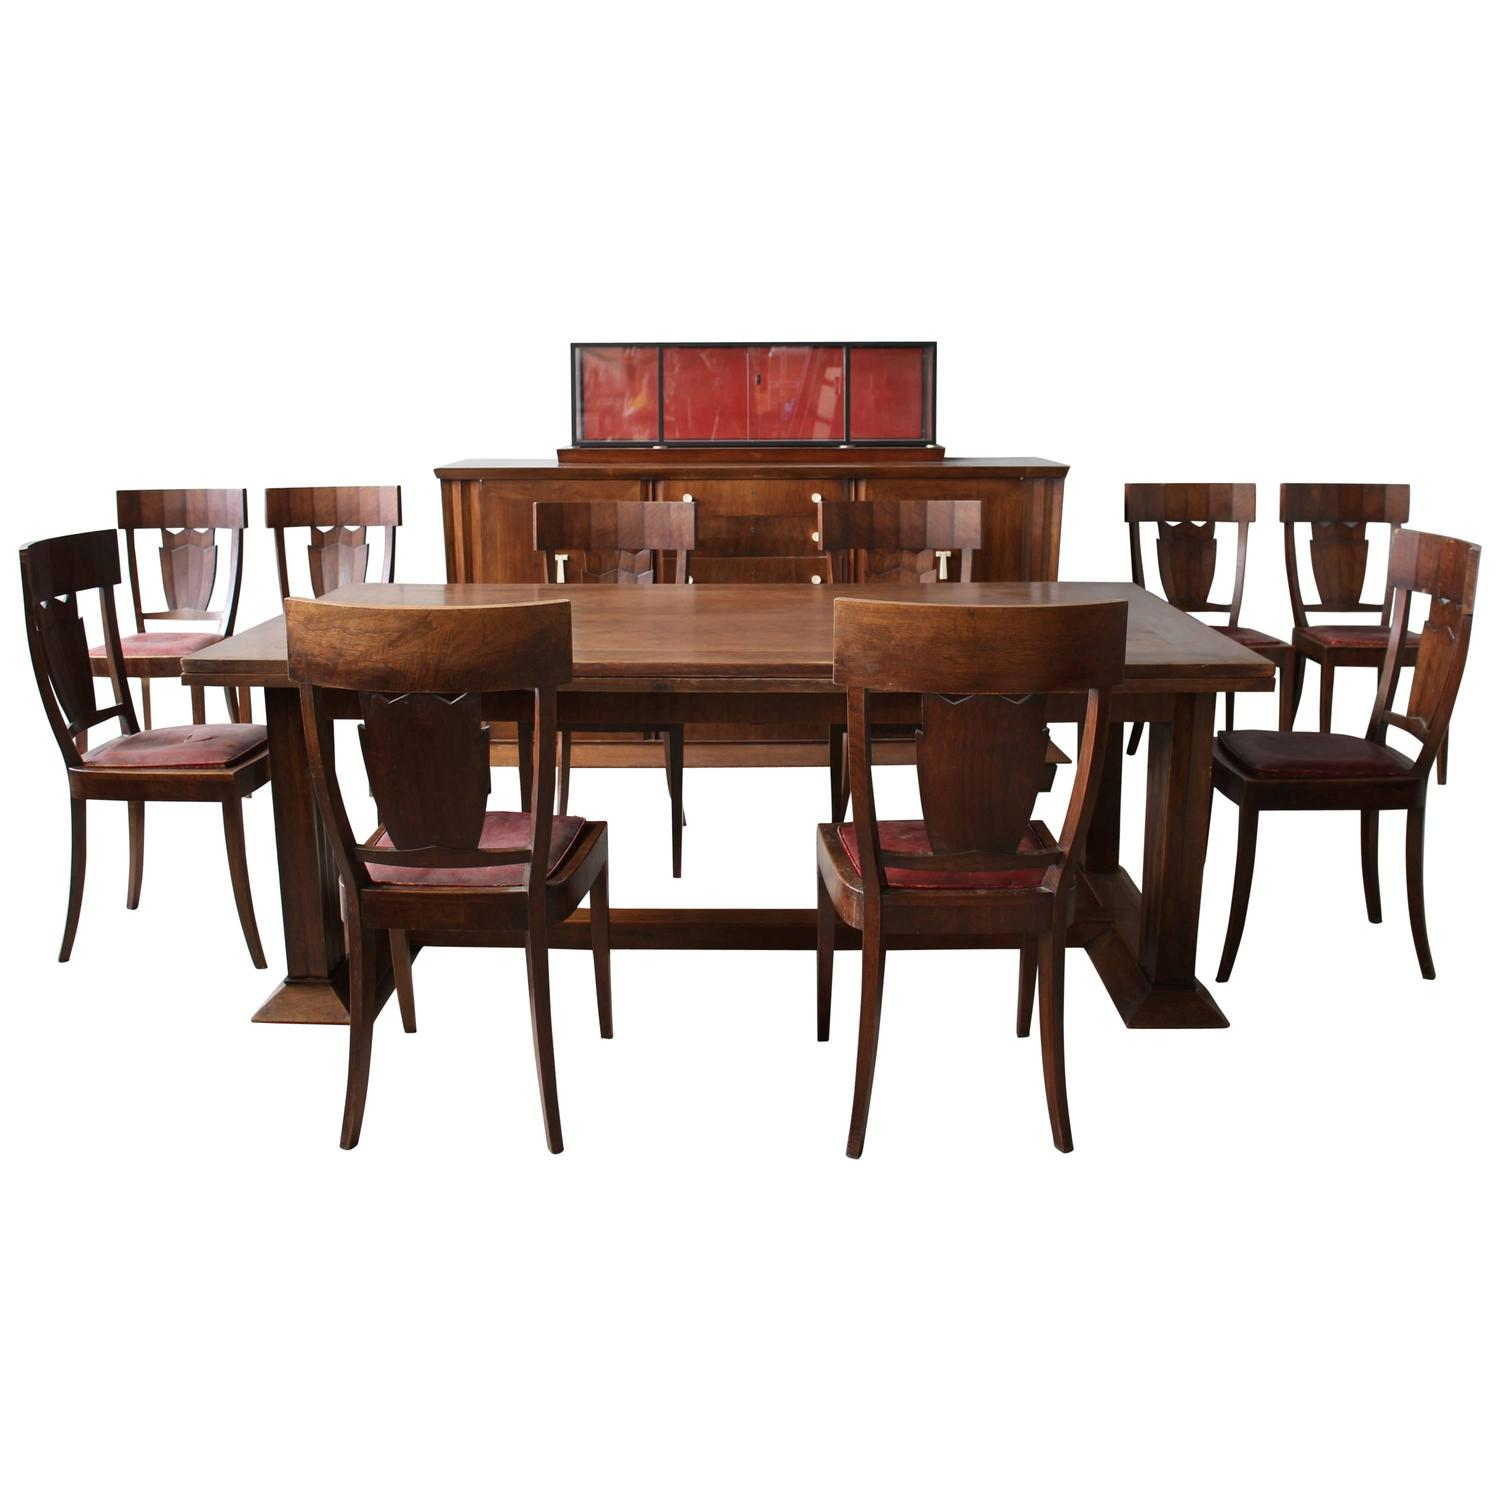 Rare French Art Deco Walnut Dining Room Set by Jean-Charles Moreux